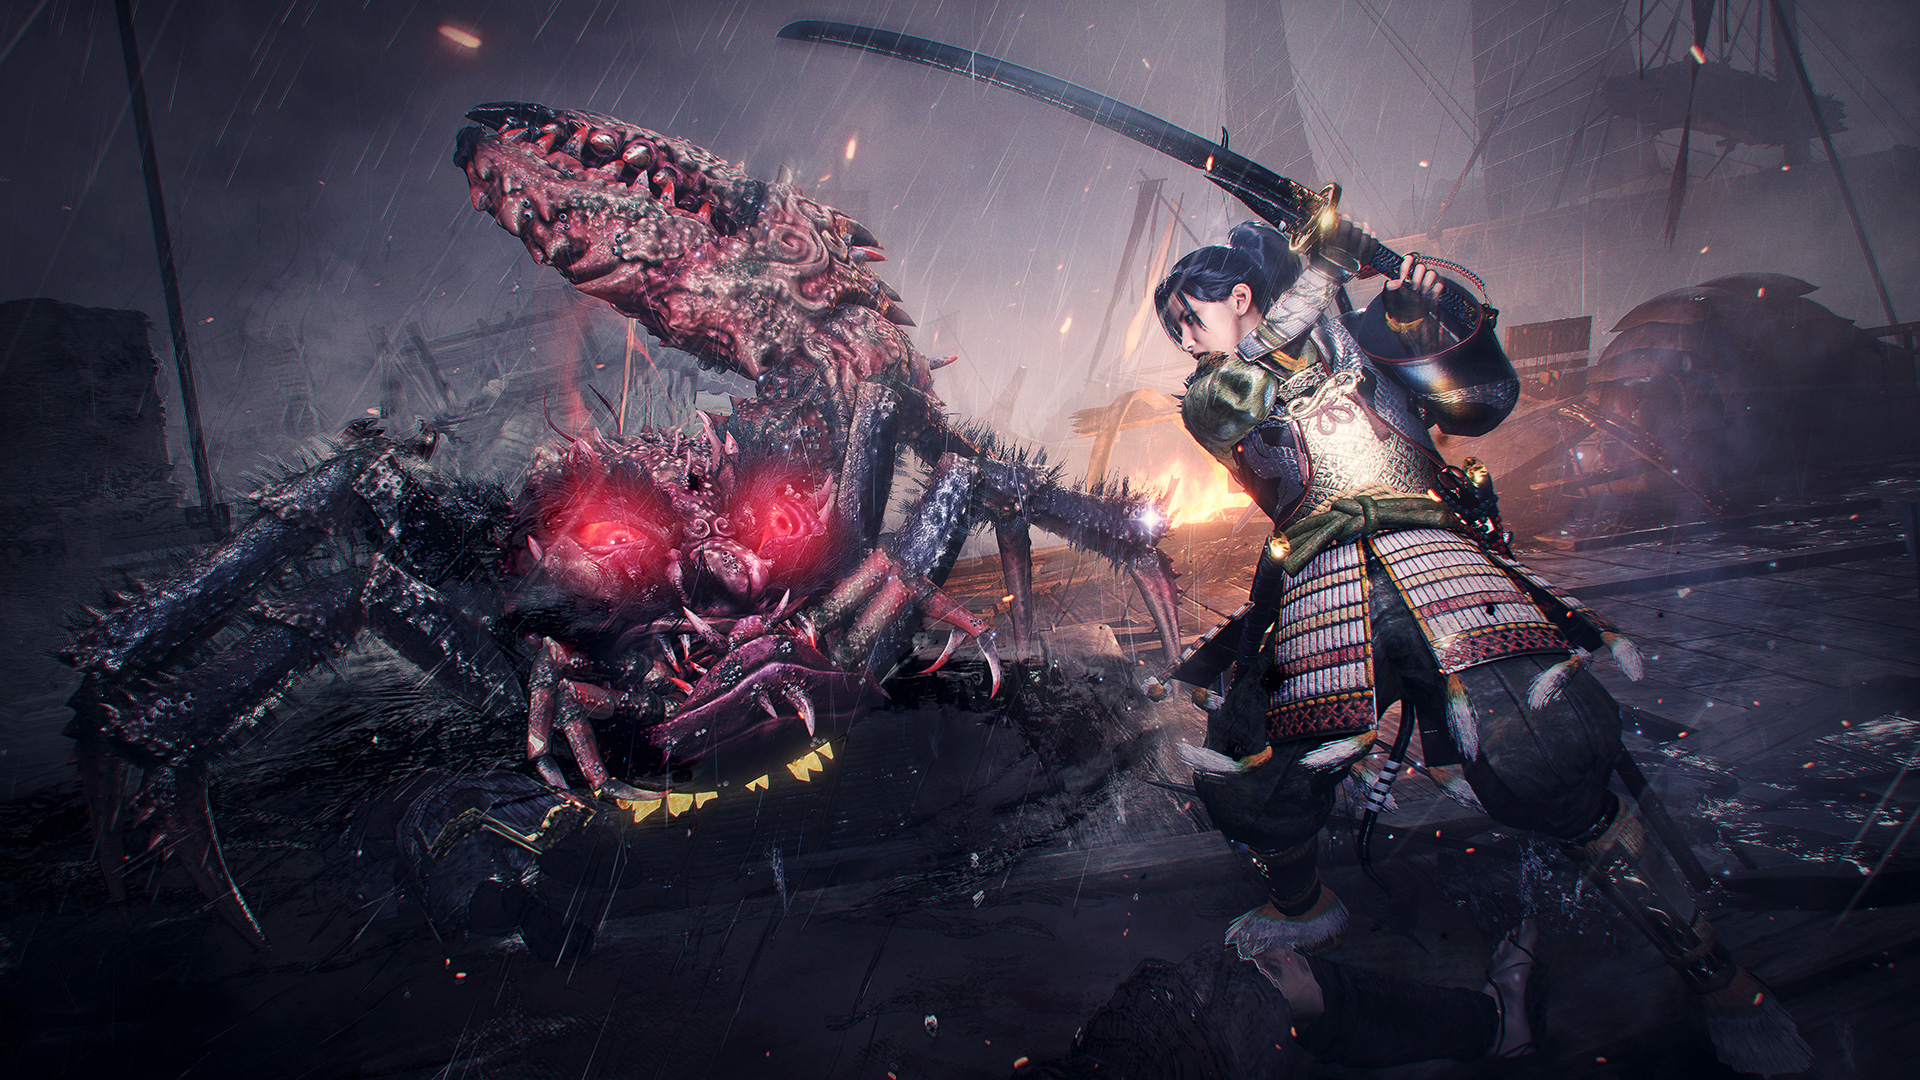 Here's a good long look at Nioh 2 Remastered running on PS5 screenshot